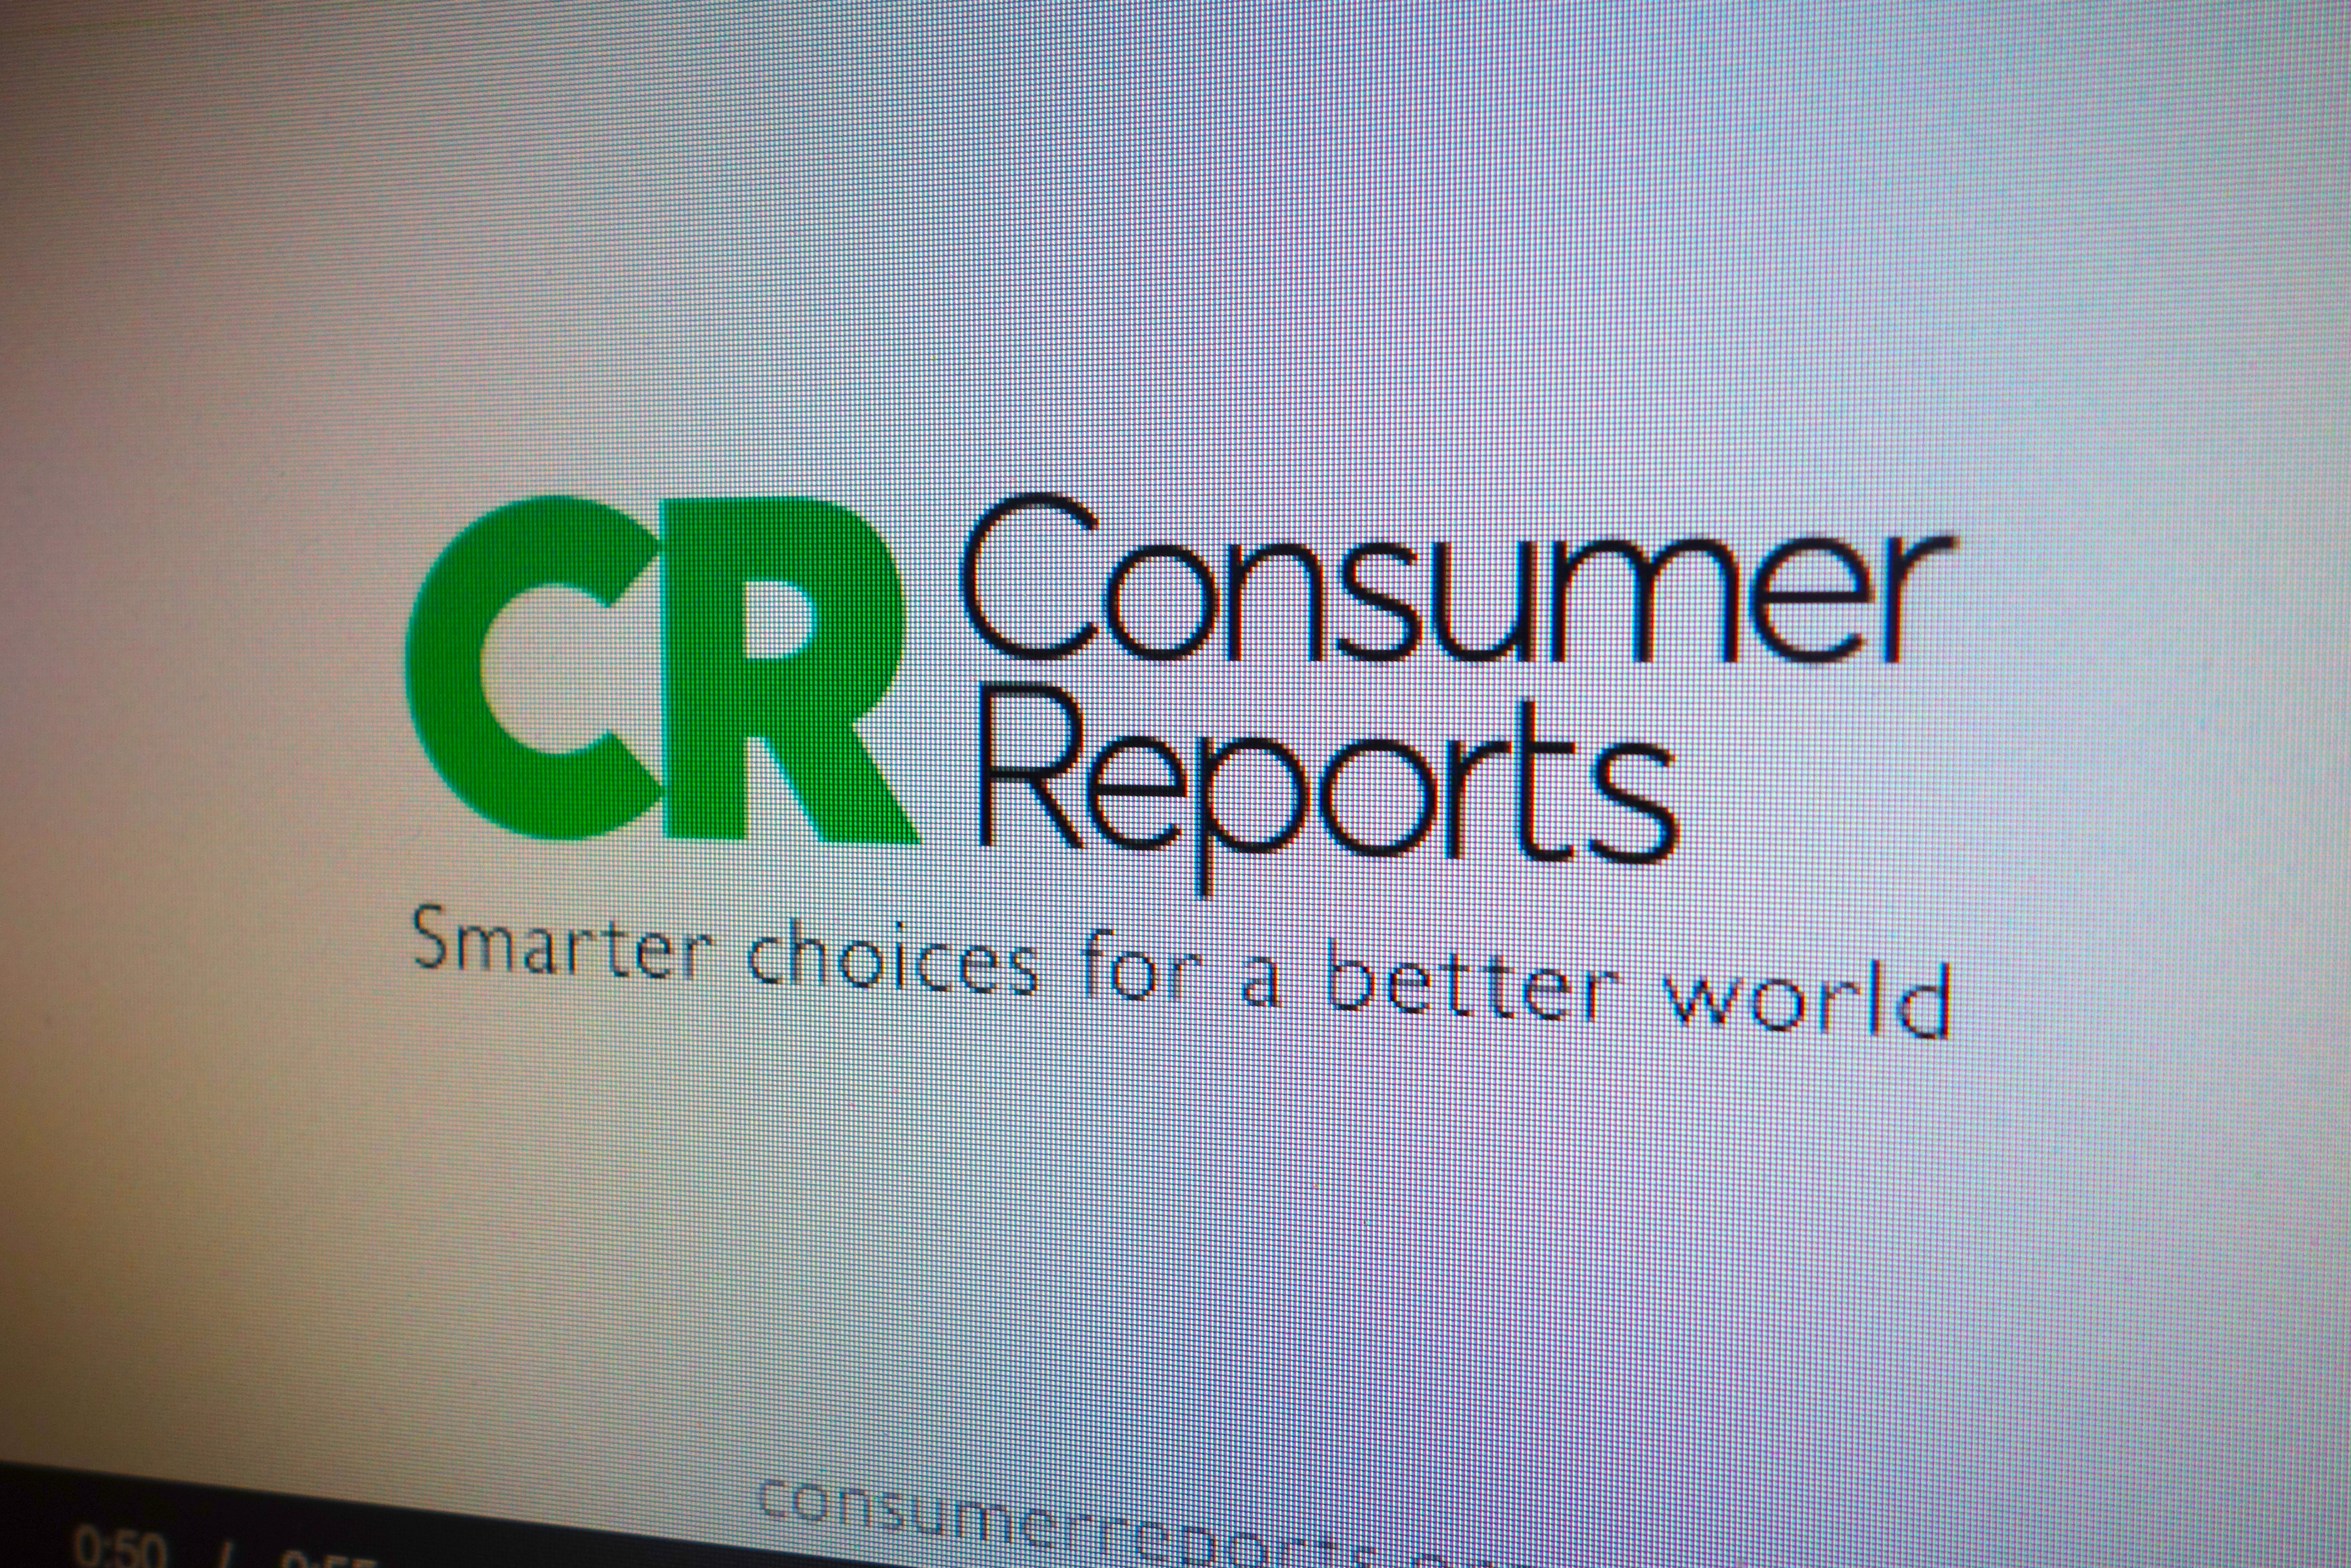 Consumer Reports to grade tech products on security, privacy